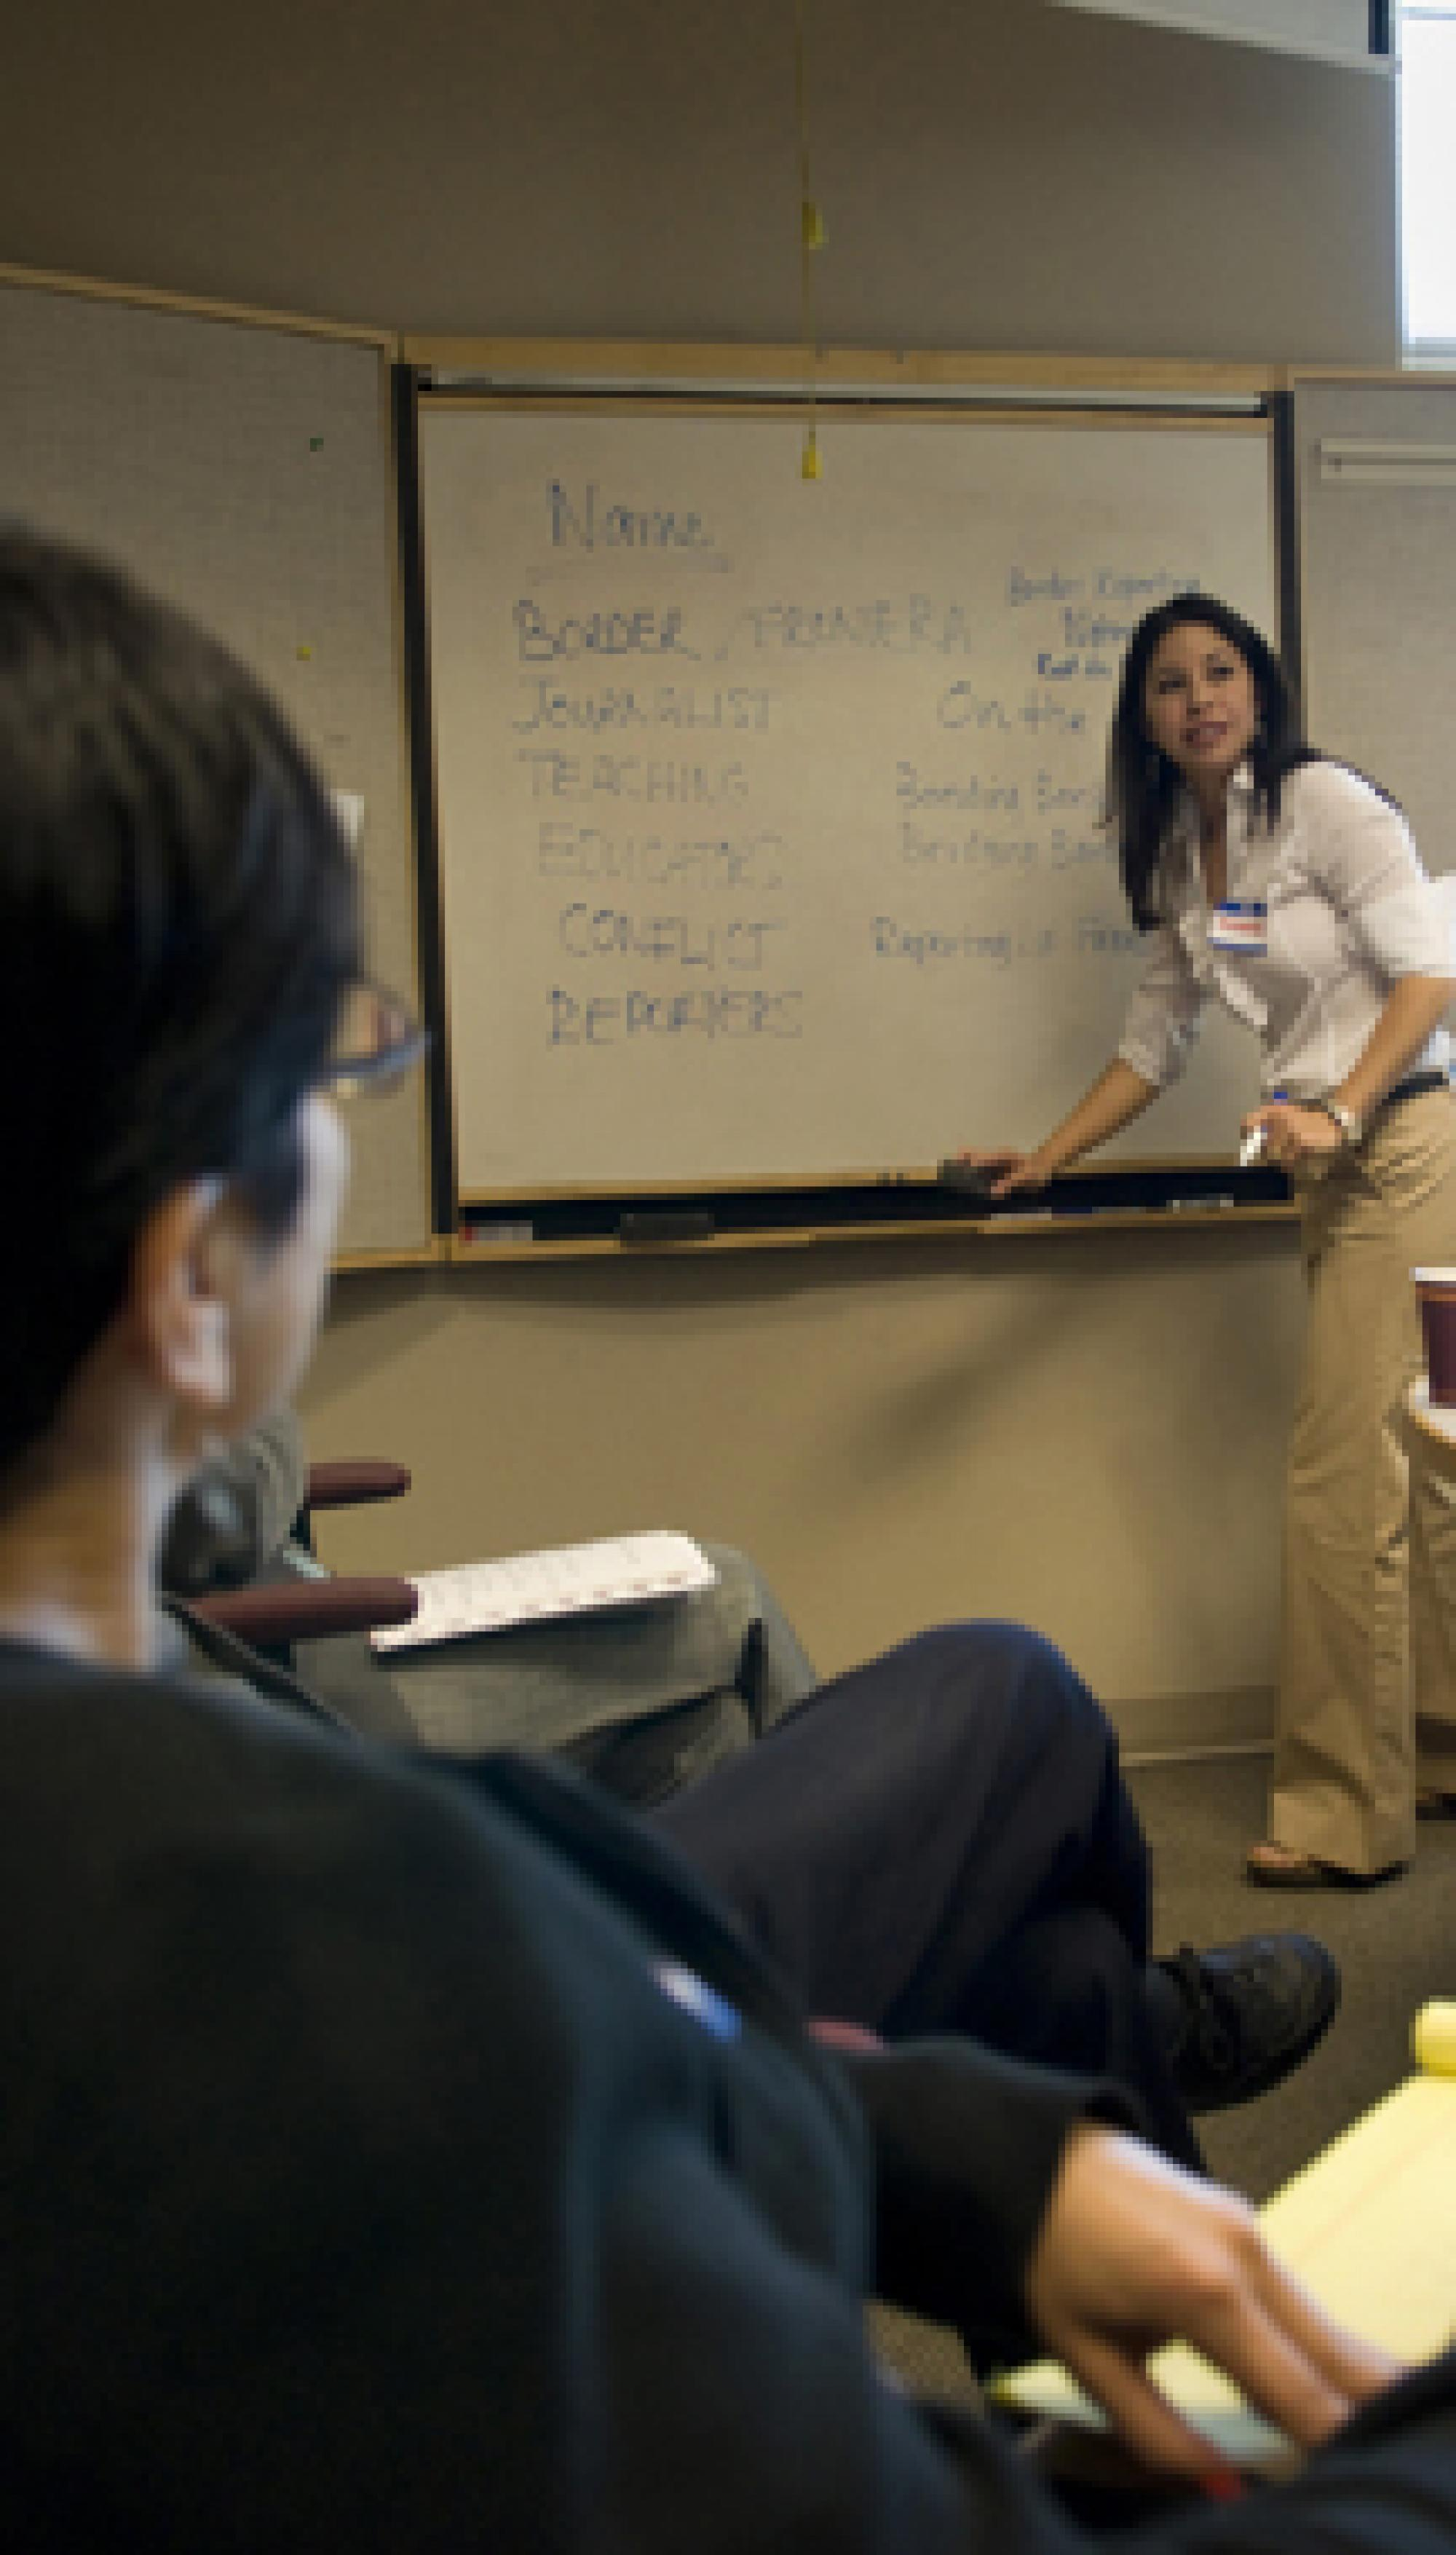 Professor Celeste González de Bustamente from the UA School of Journalism jots down ideas generated from participants at a workshop on teaching border reporting.